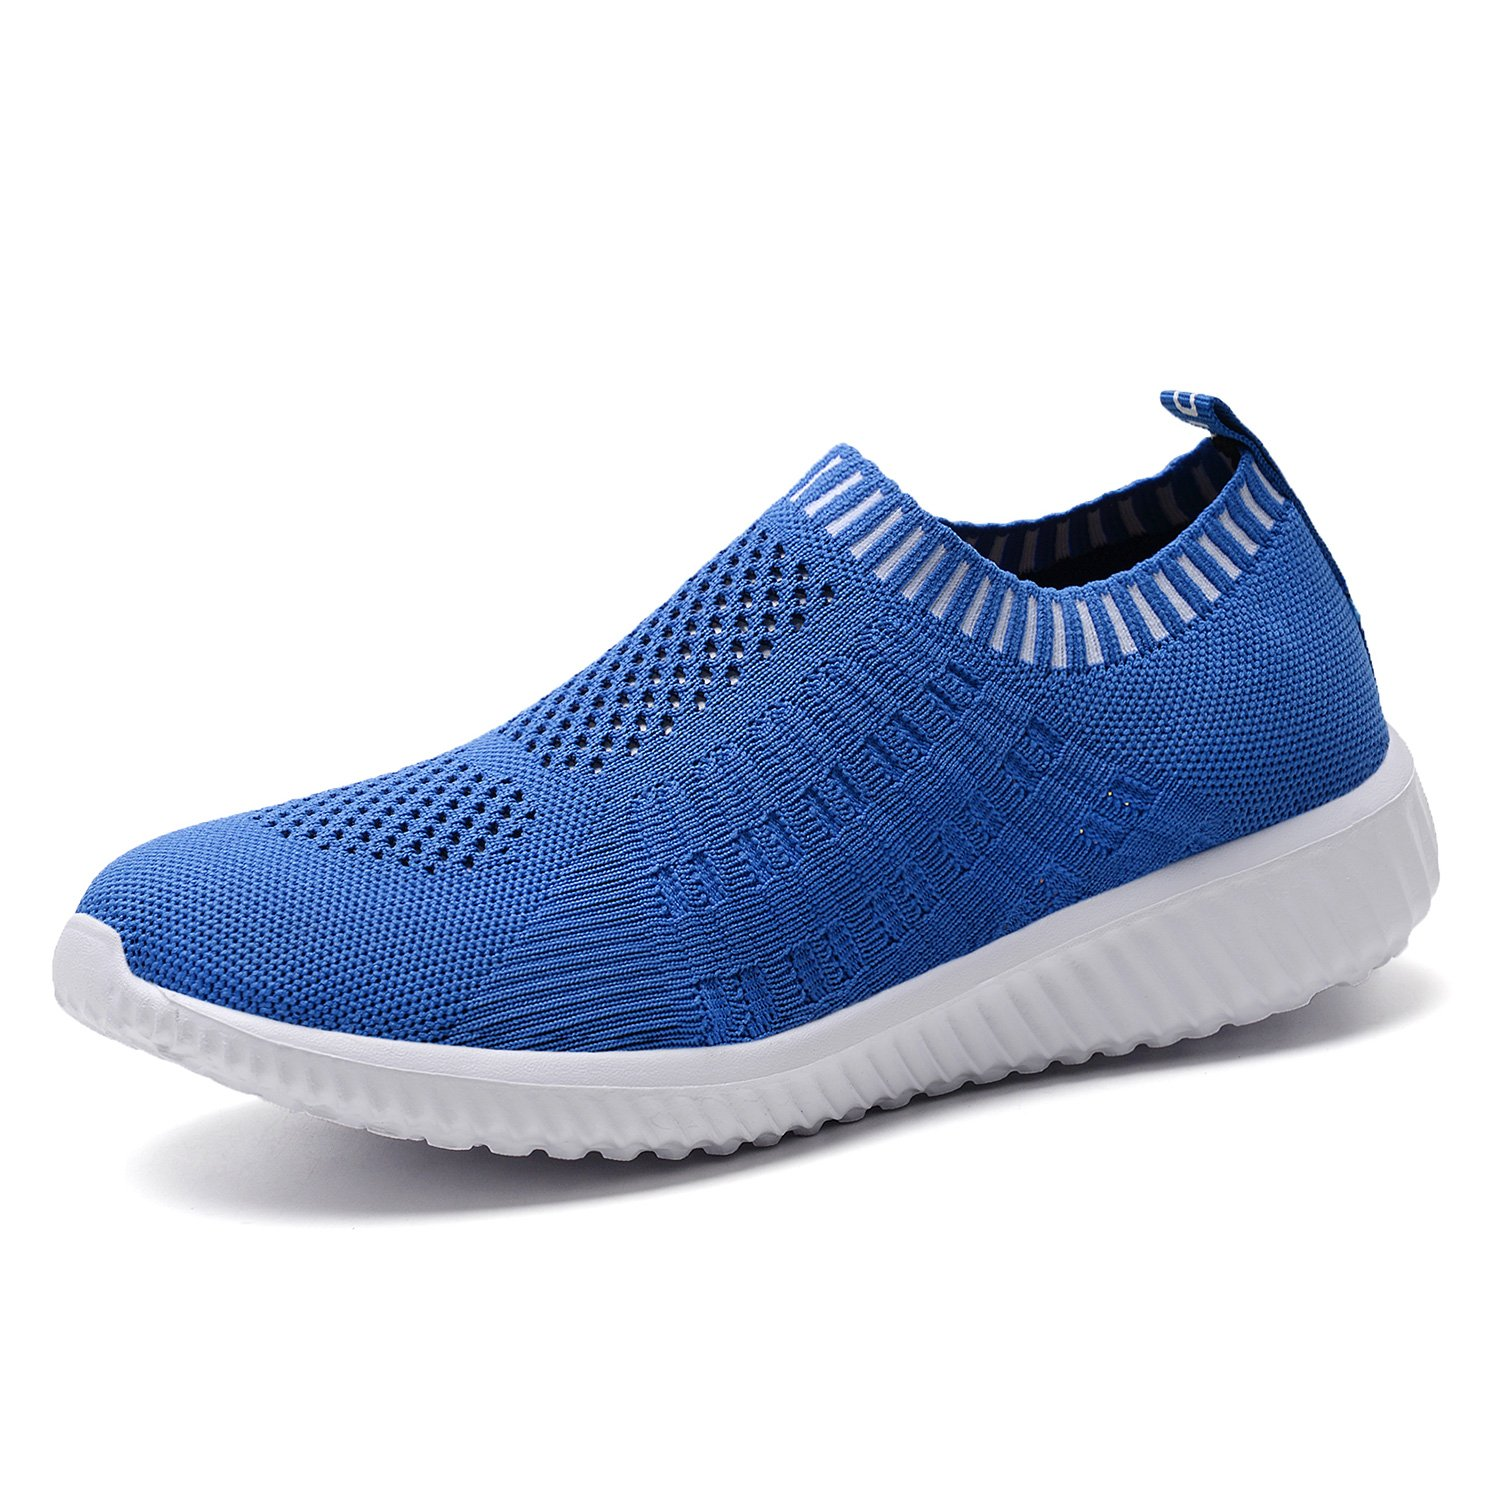 TIOSEBON Women's Athletic Shoes Casual Mesh Walking Sneakers - Breathable Running Shoes B076P4JJ49 5 M US|6701 Blue